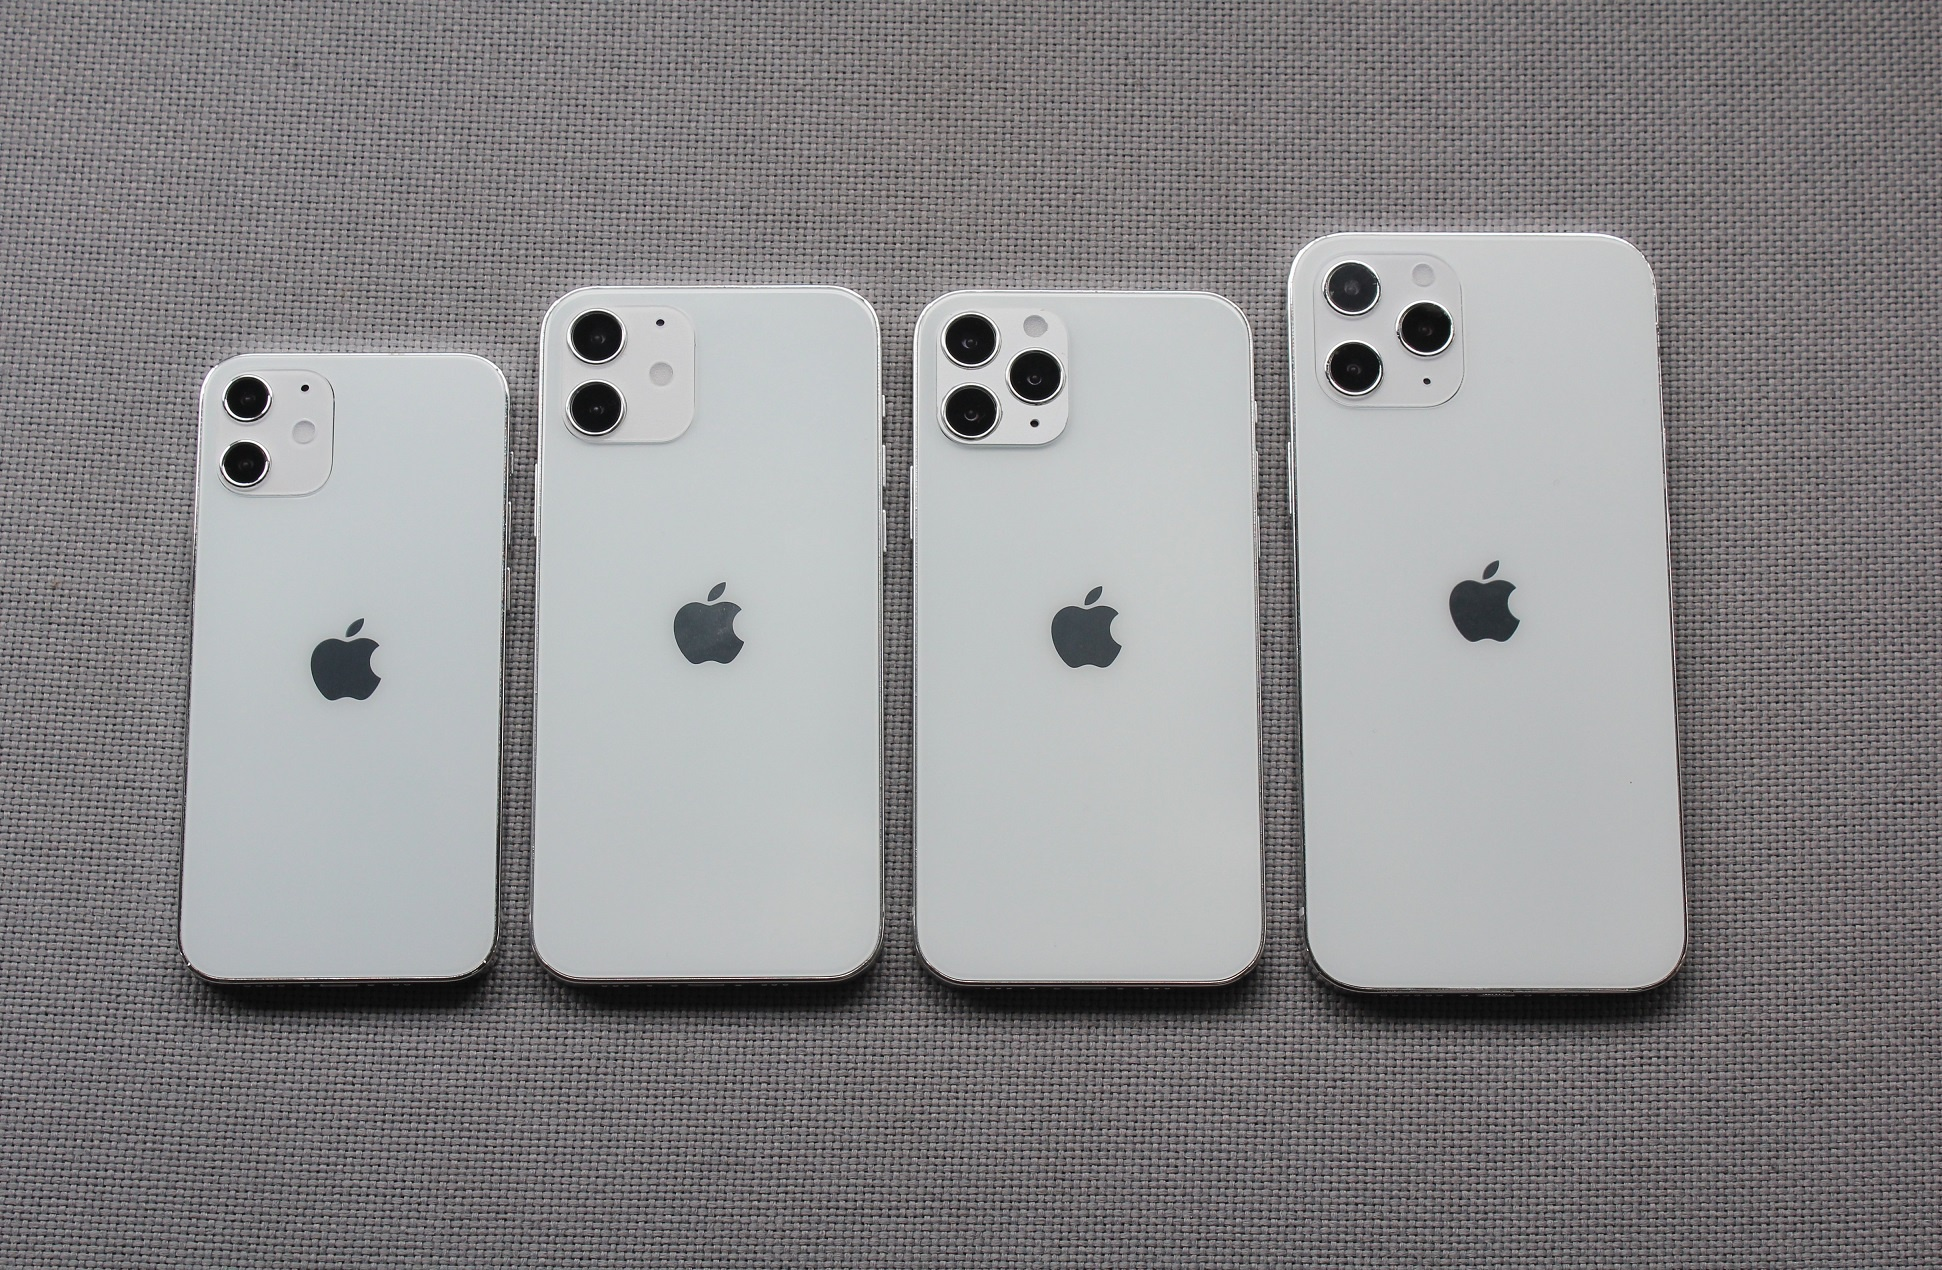 Chan dung iPhone 12 anh 1